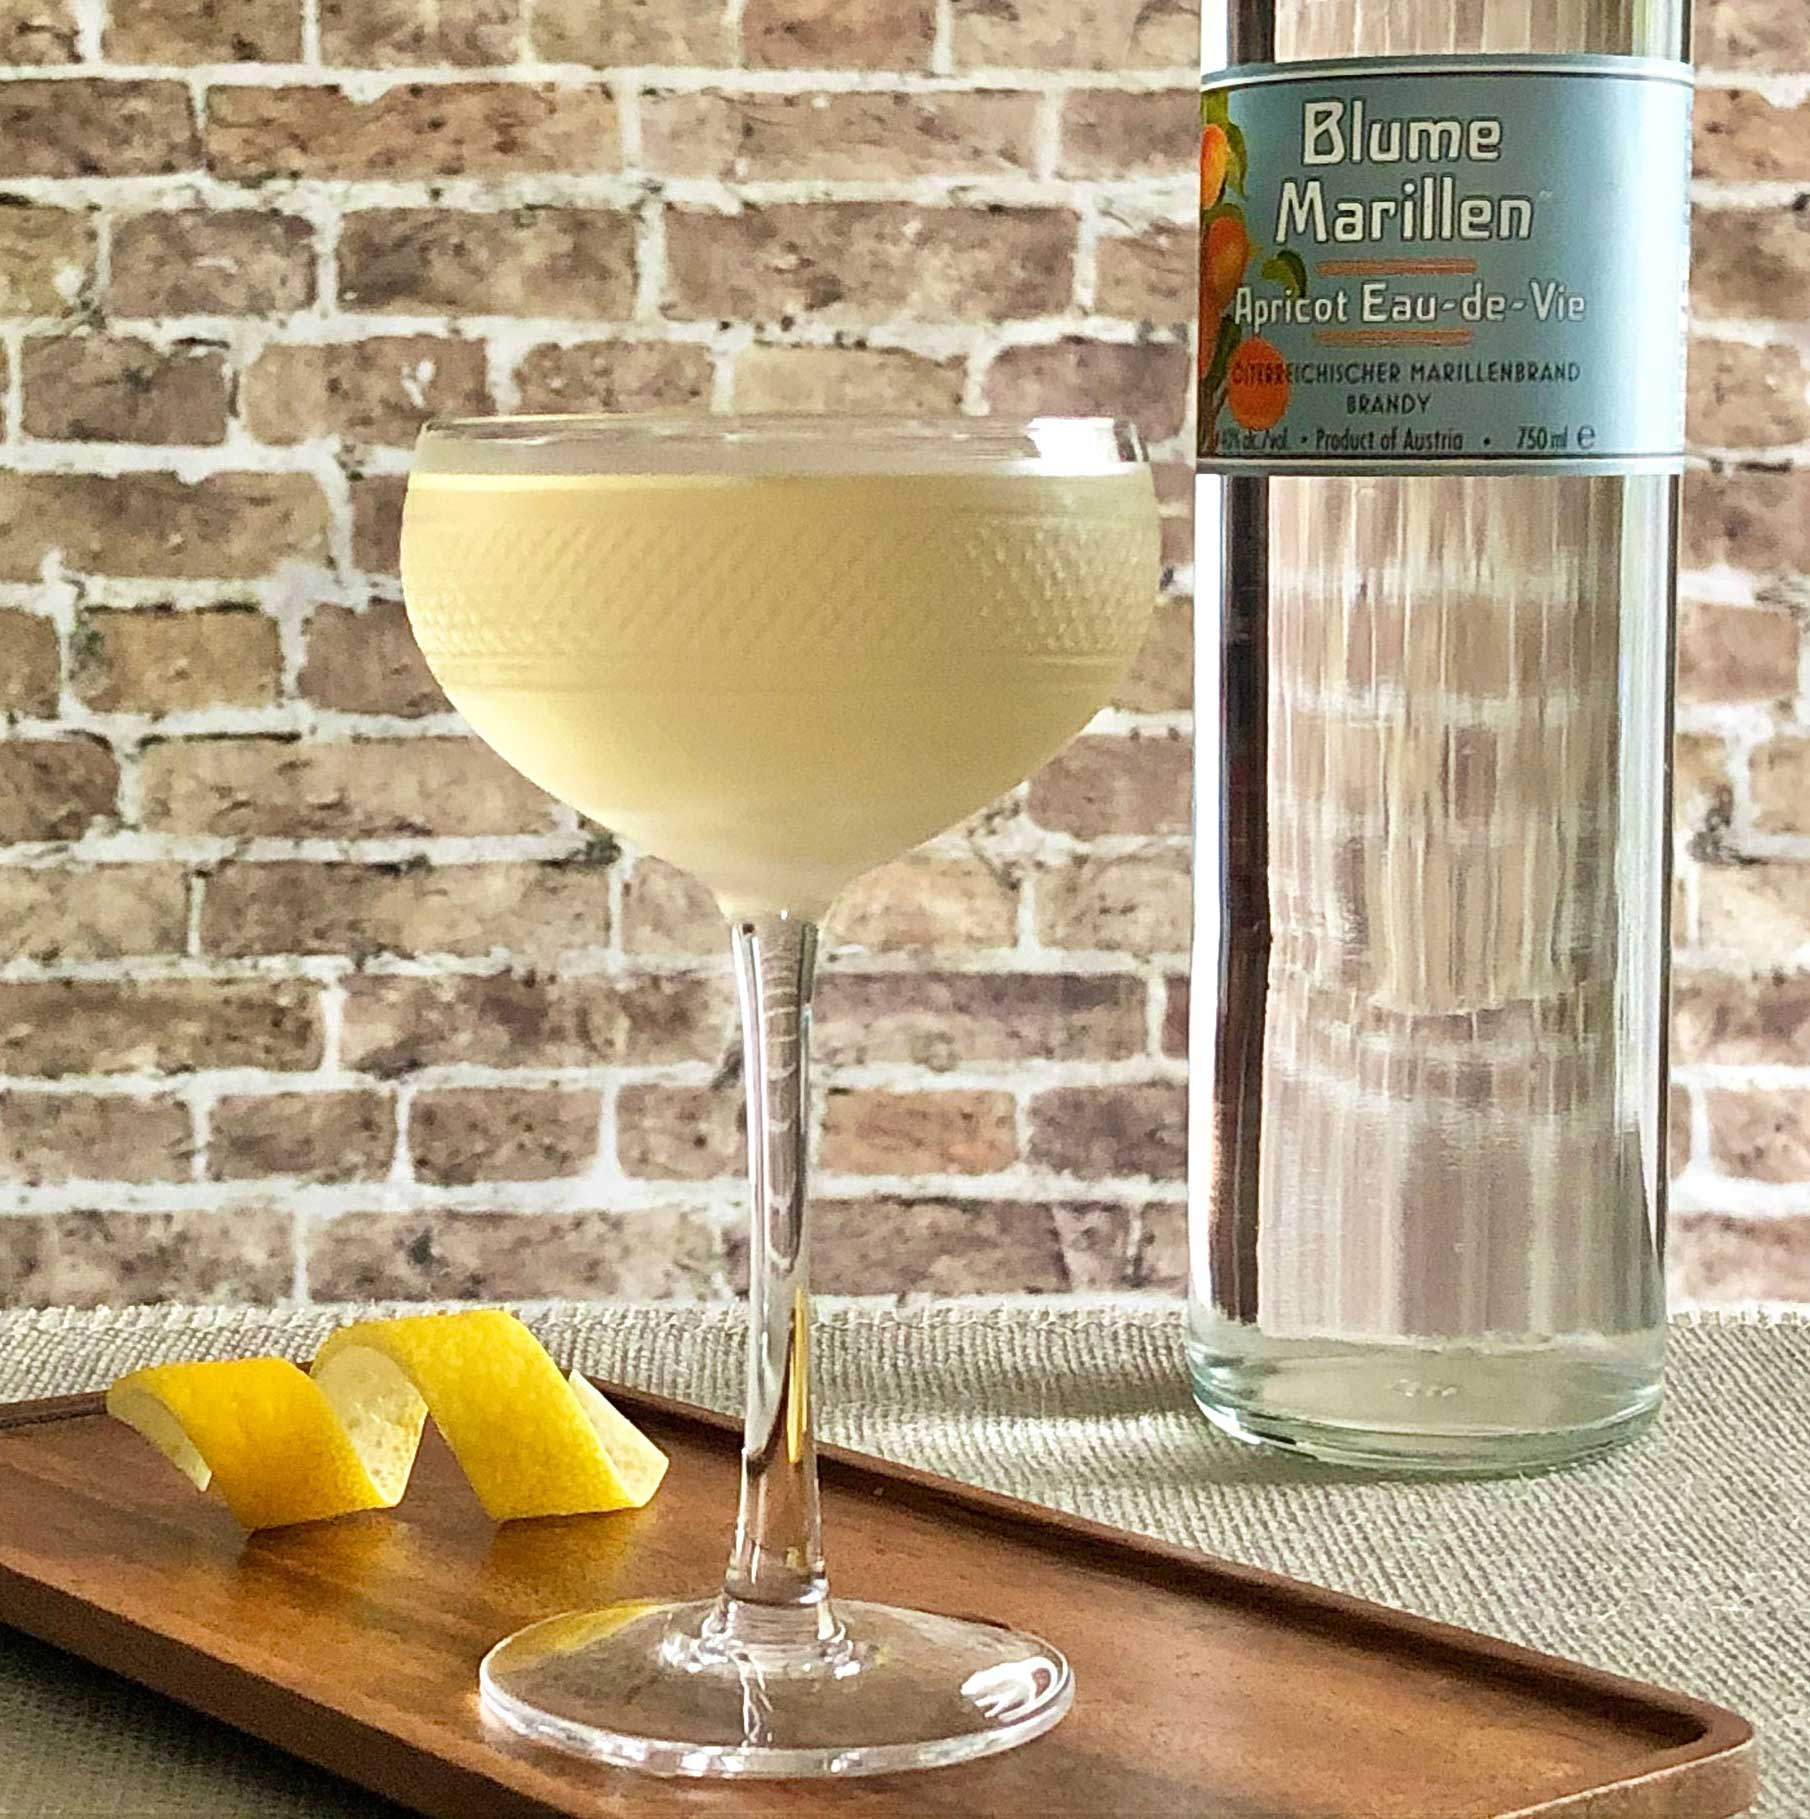 An example of the Gin Blossom, the mixed drink (cocktail), Adapted from Julie Reiner, NYC, featuring Hayman's London Dry Gin, Dolin Blanc Vermouth de Chambéry, Blume Marillen Apricot Eau-de-Vie, and orange bitters; photo by Lee Edwards